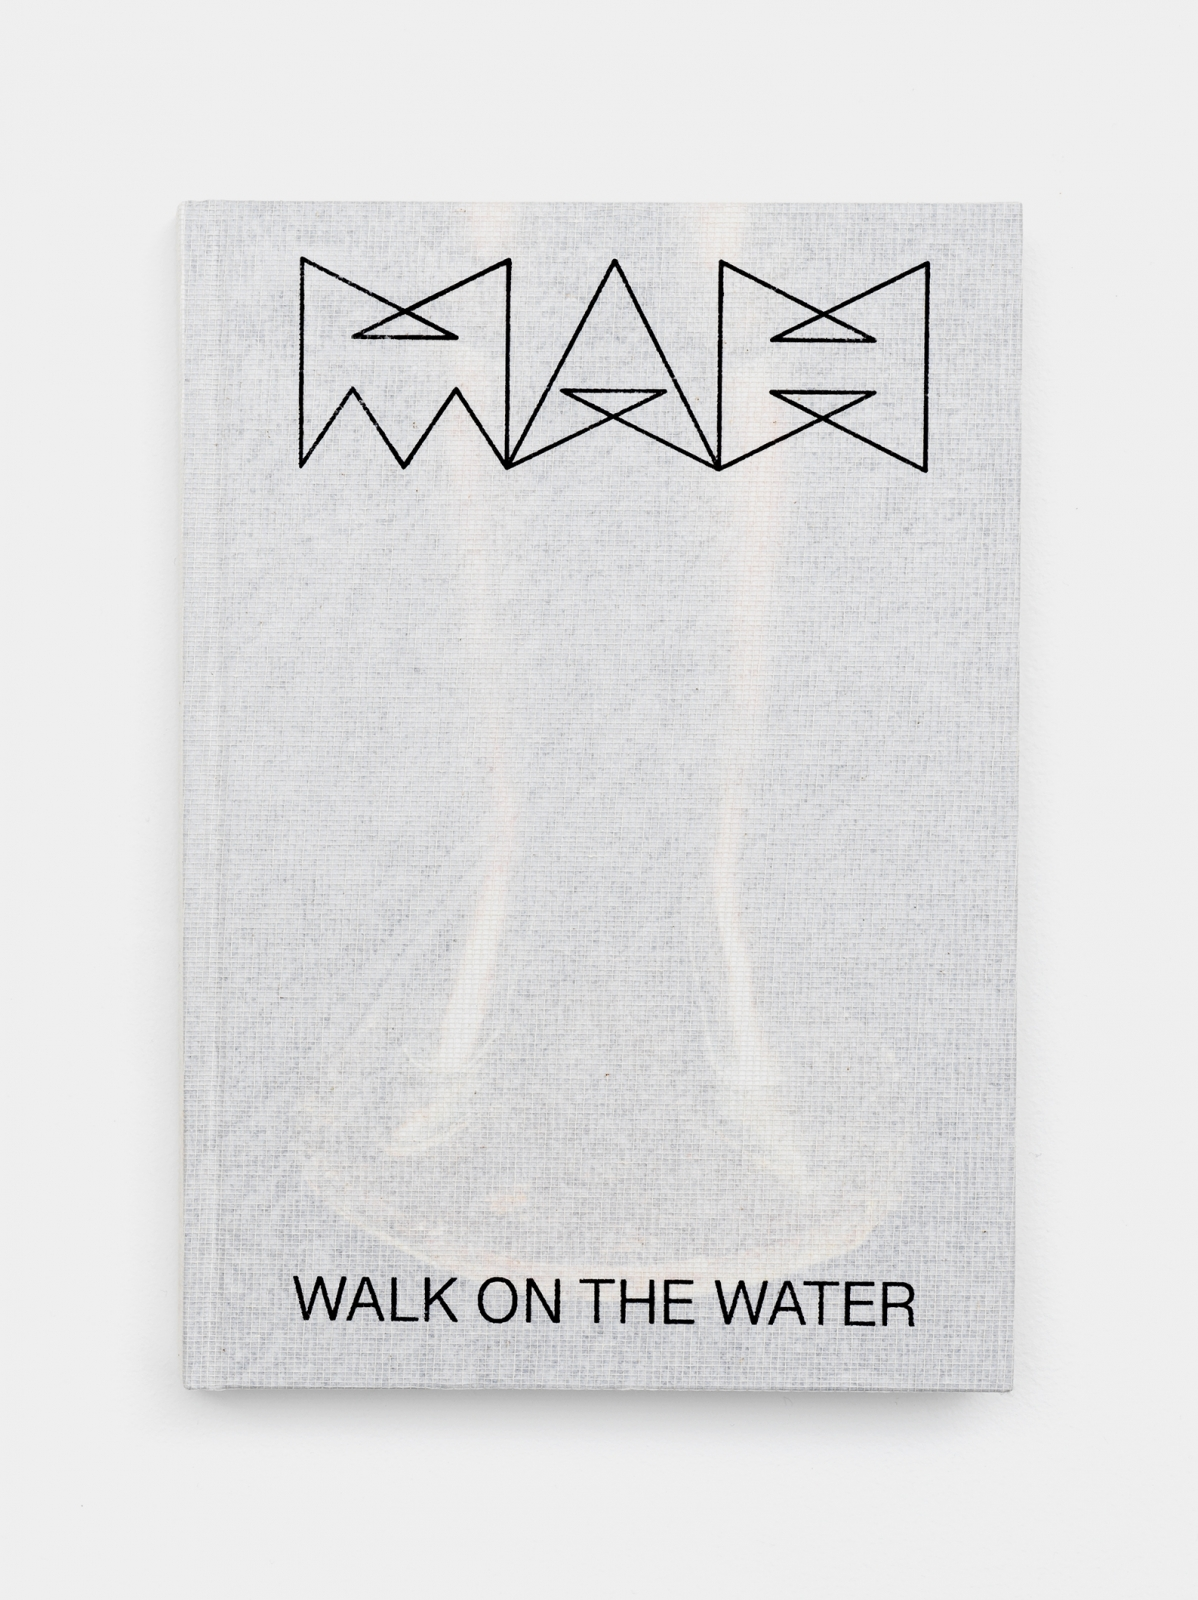 Walk on the Water